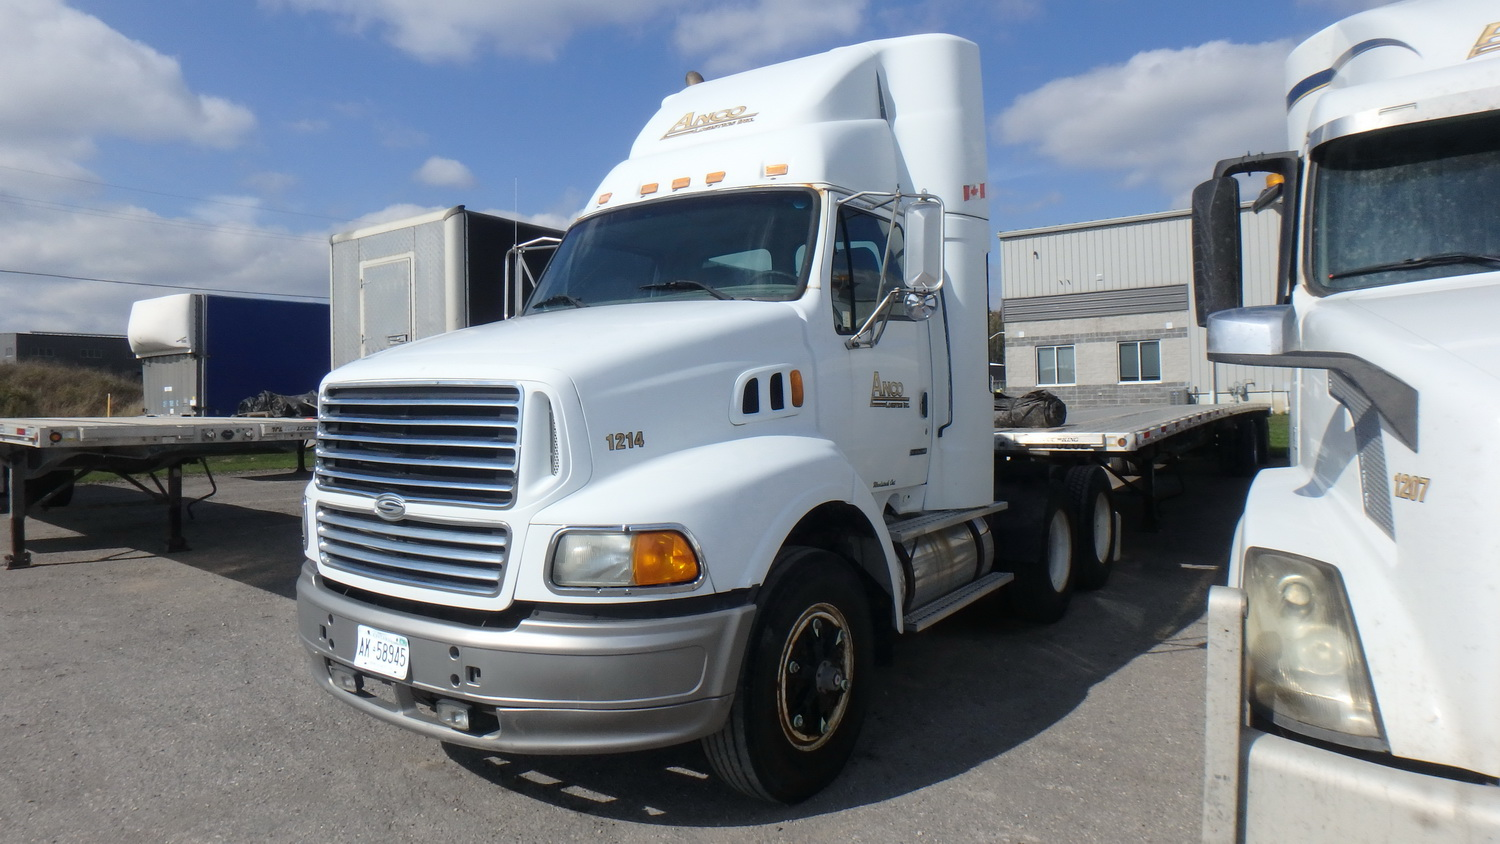 STERLING SERIES 55 A9500 DAY CAB HIGHWAY TRACTOR W/ SERIES 55A9500 I-6 12.0L DIESEL, 6X4, EATON